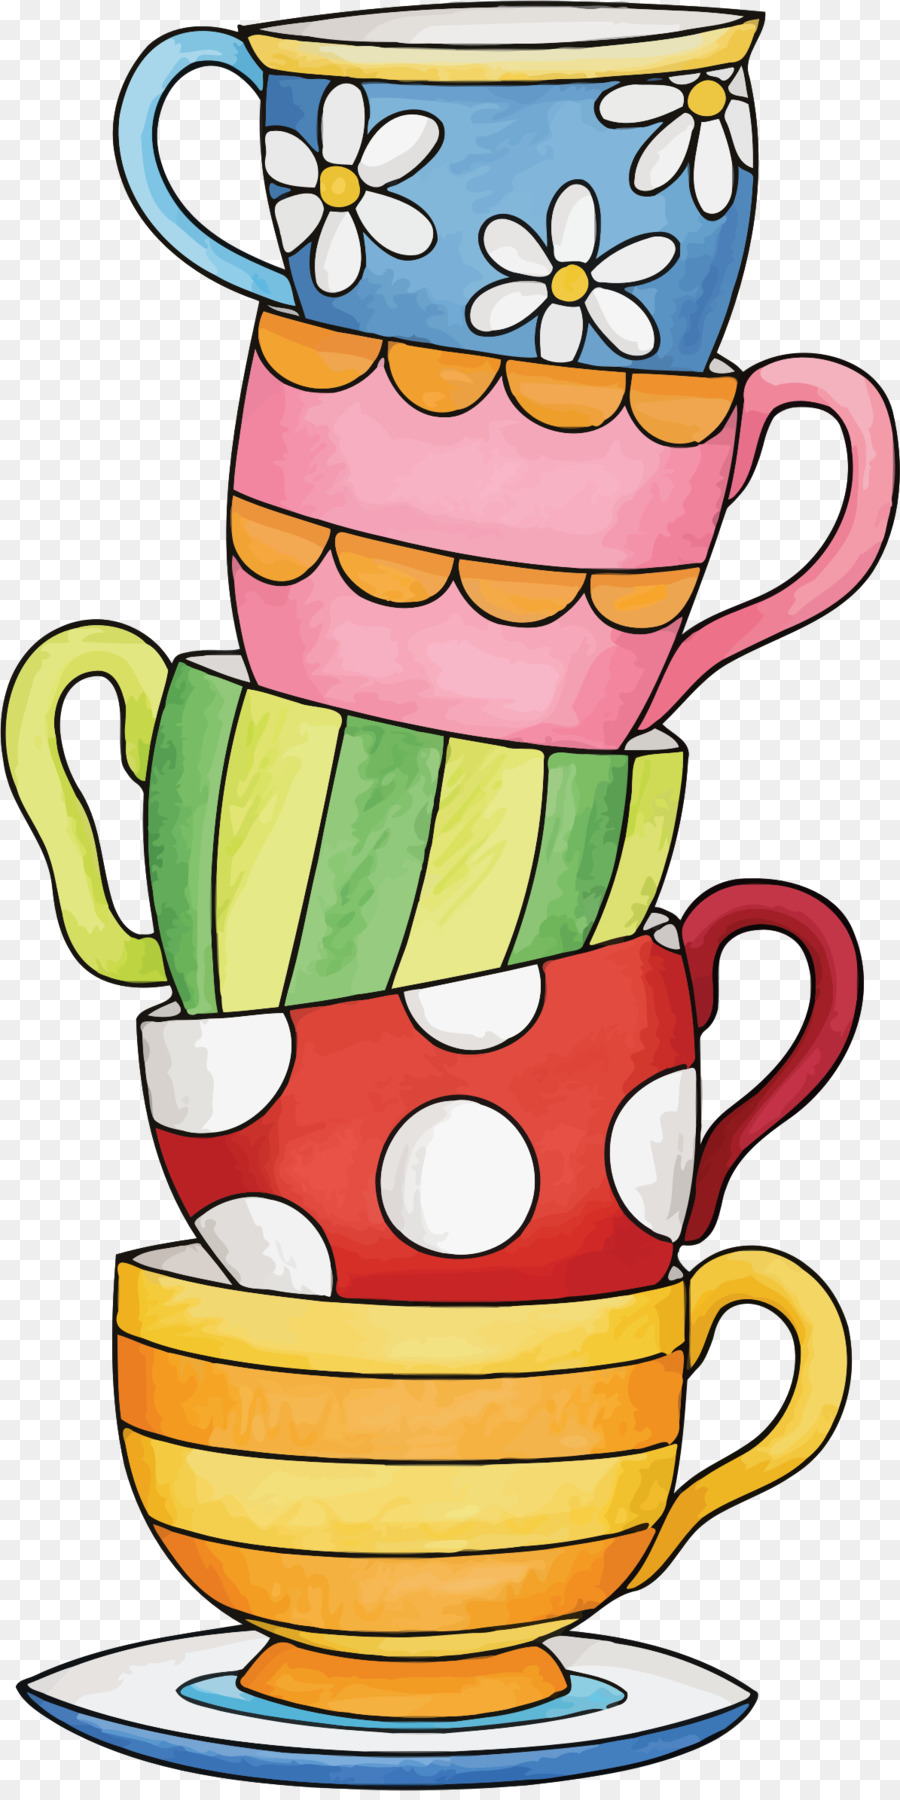 Tea cup pictures clipart clip art freeuse Cup Of Coffee clipart - Tea, Teacup, Drawing, transparent ... clip art freeuse